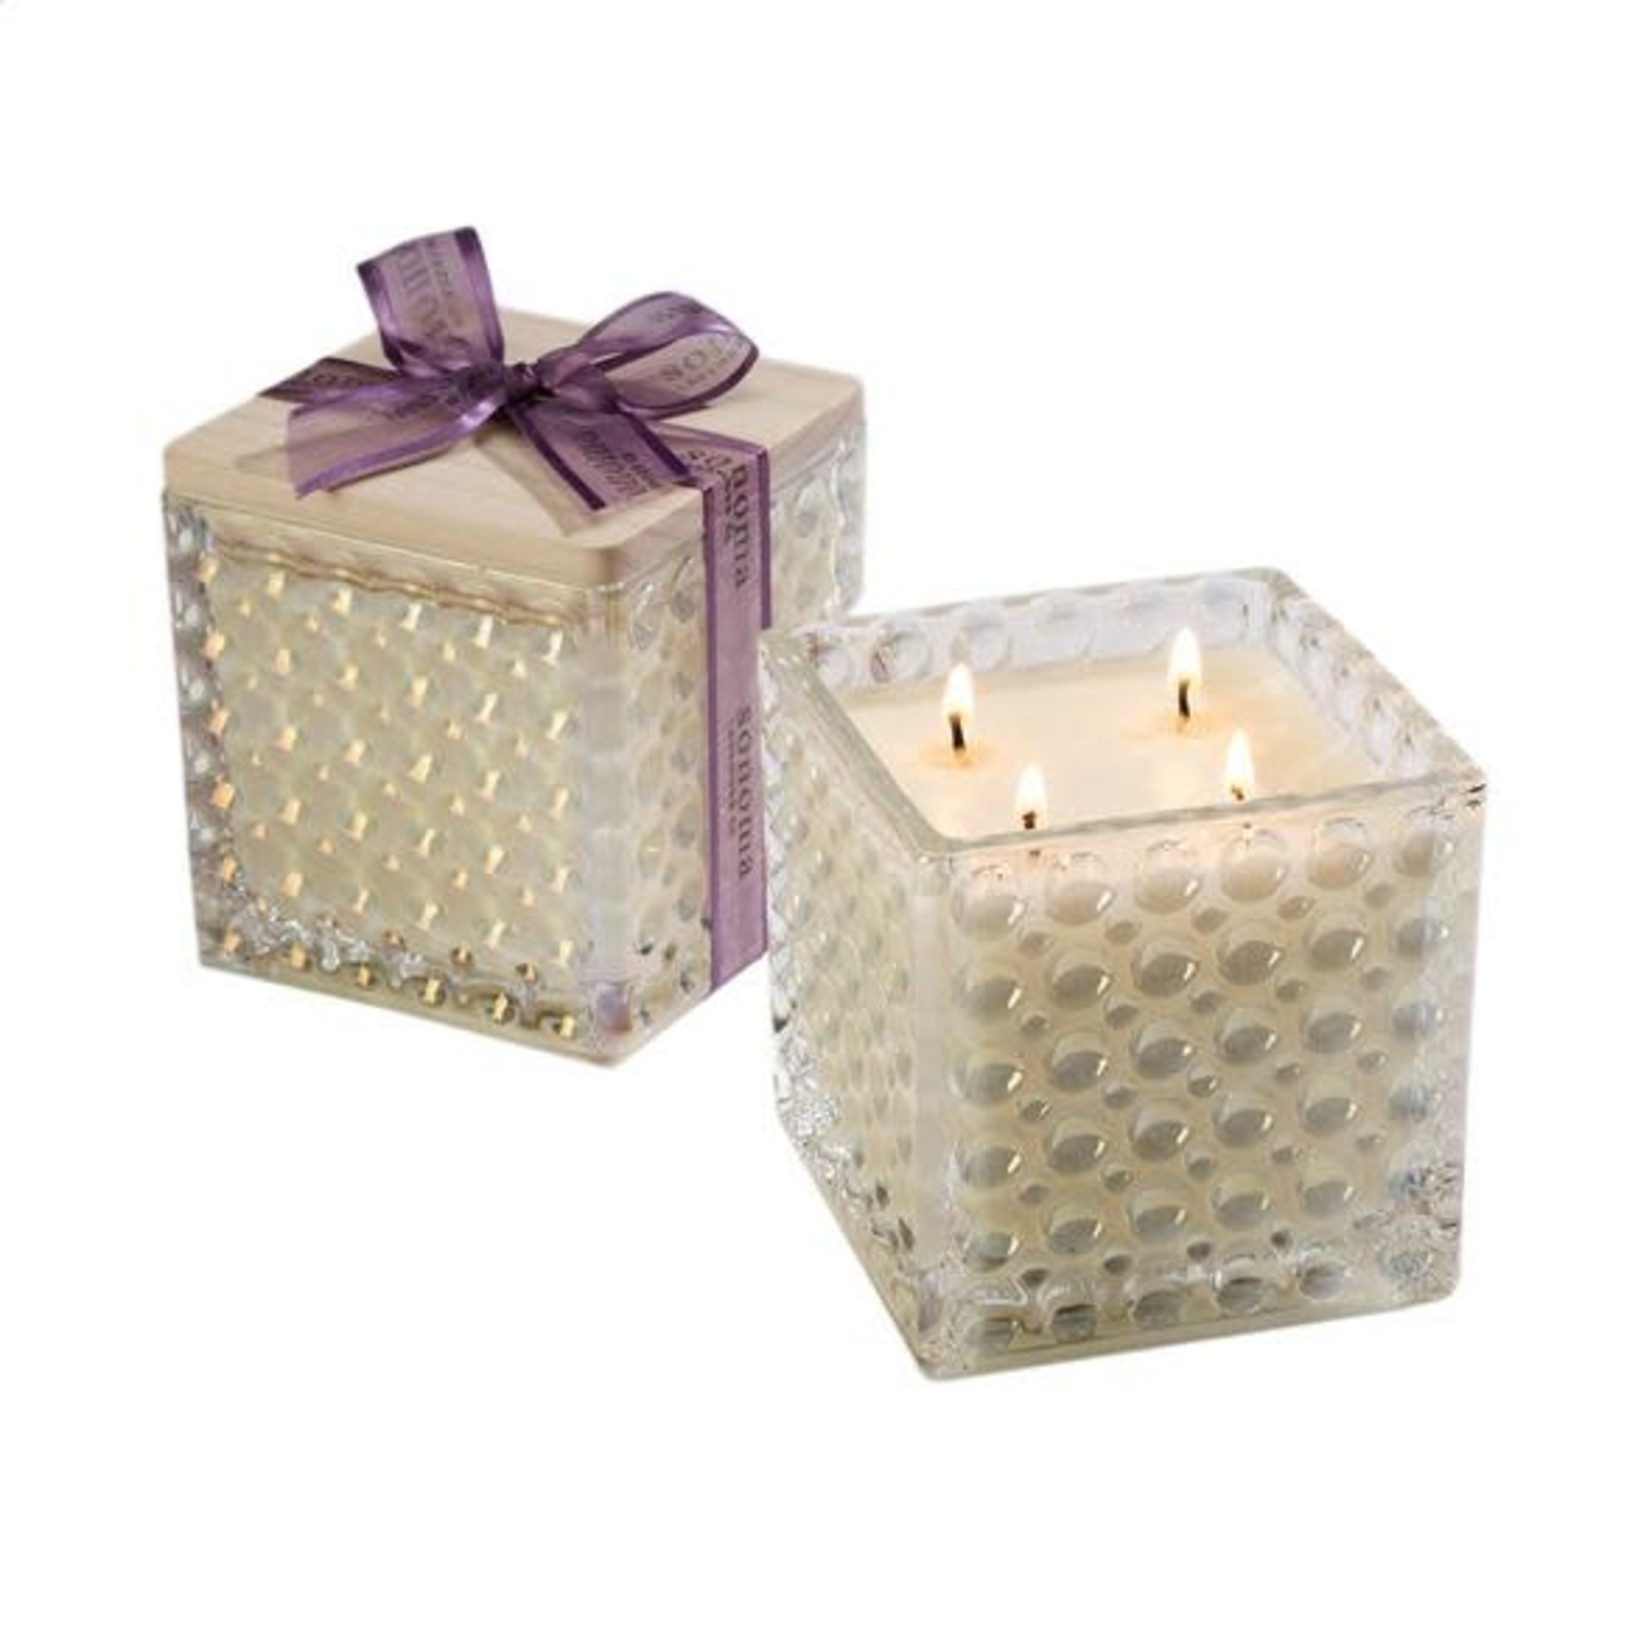 Sonoma Lavender Lavender Scented Ivory Soy Candle in Decorative Glass